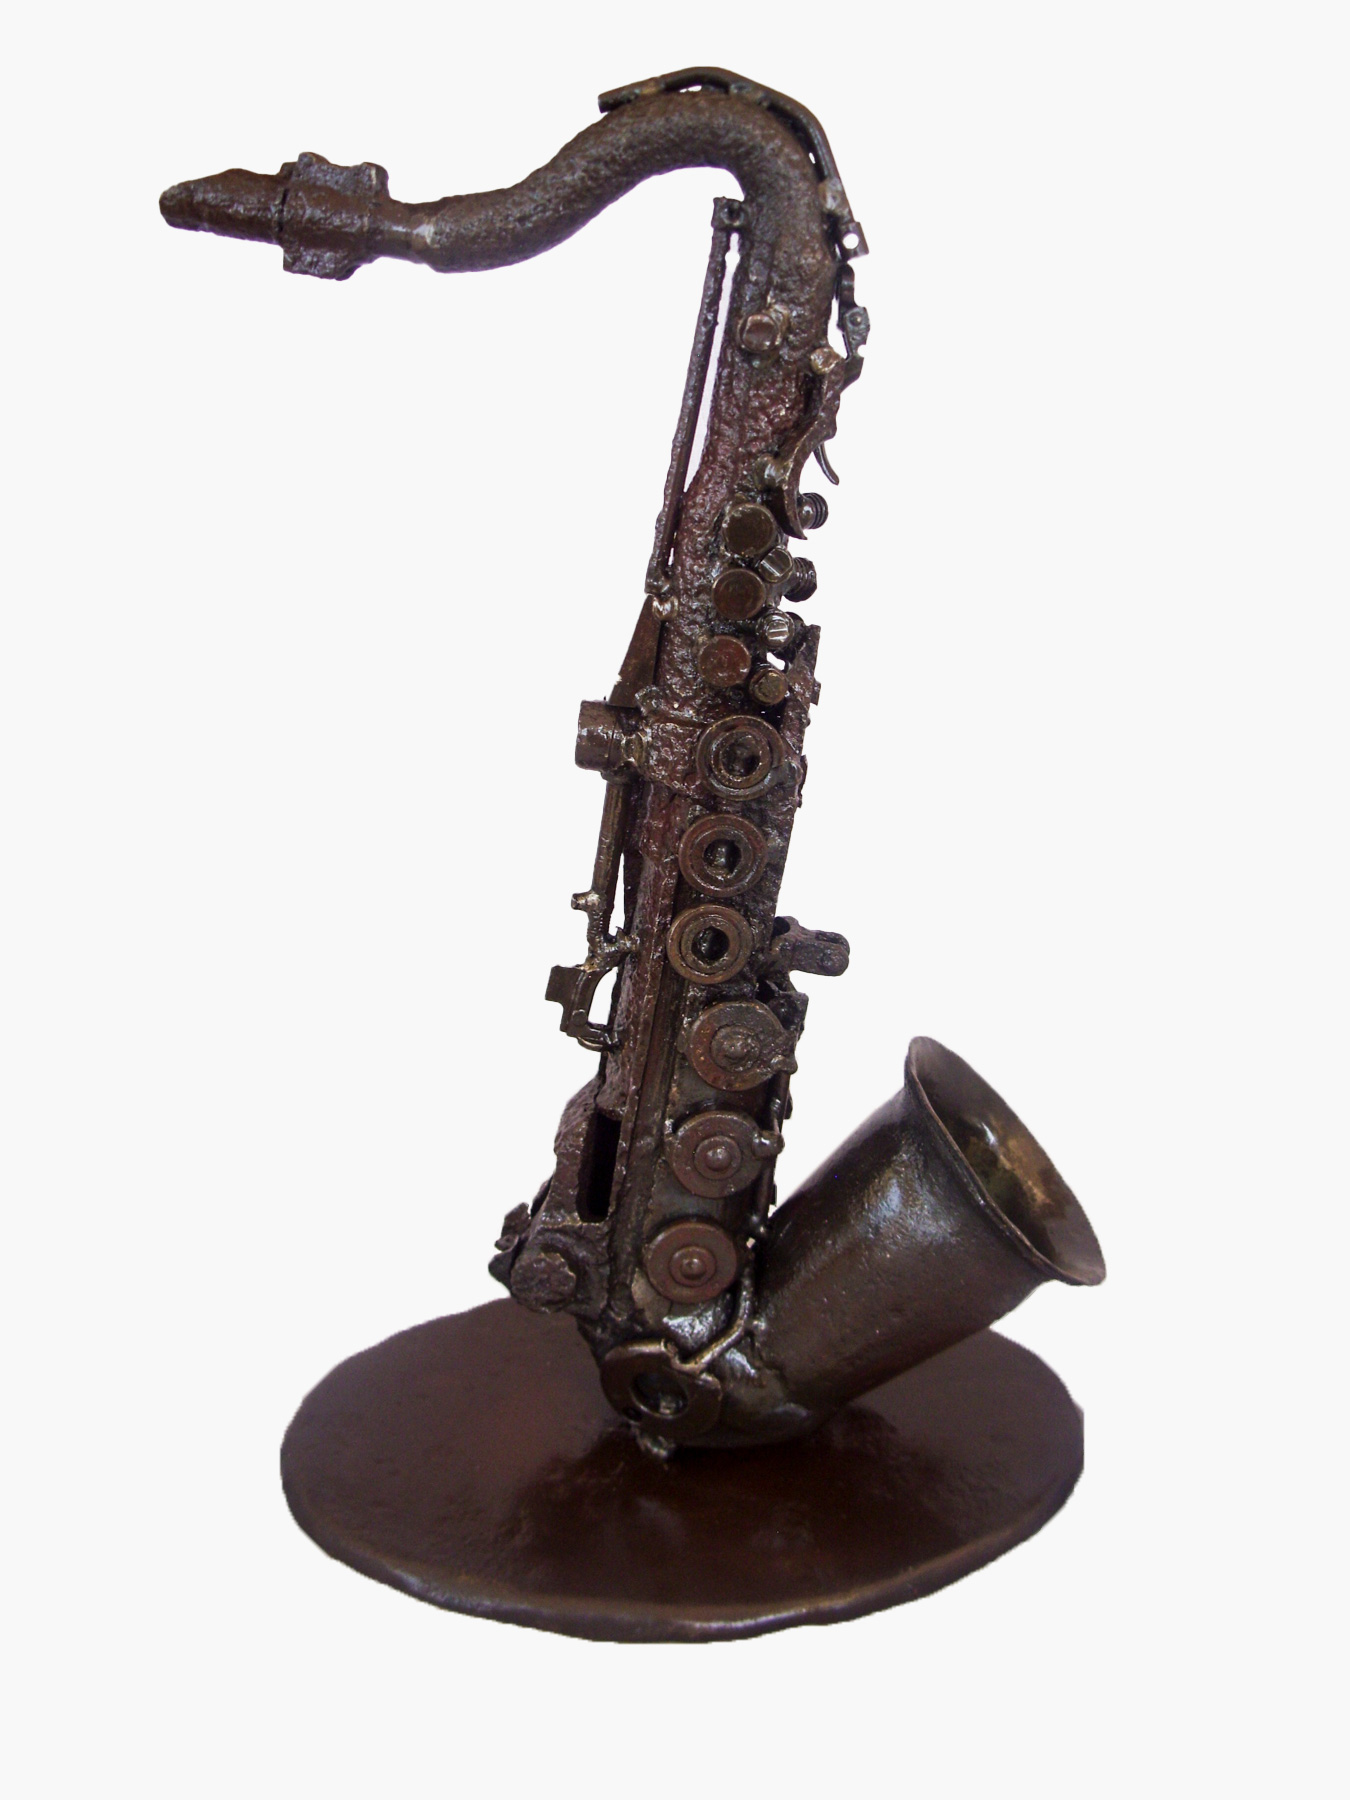 Saxophone by Manfred Zbrzezny – Arms Into Art – Liberia